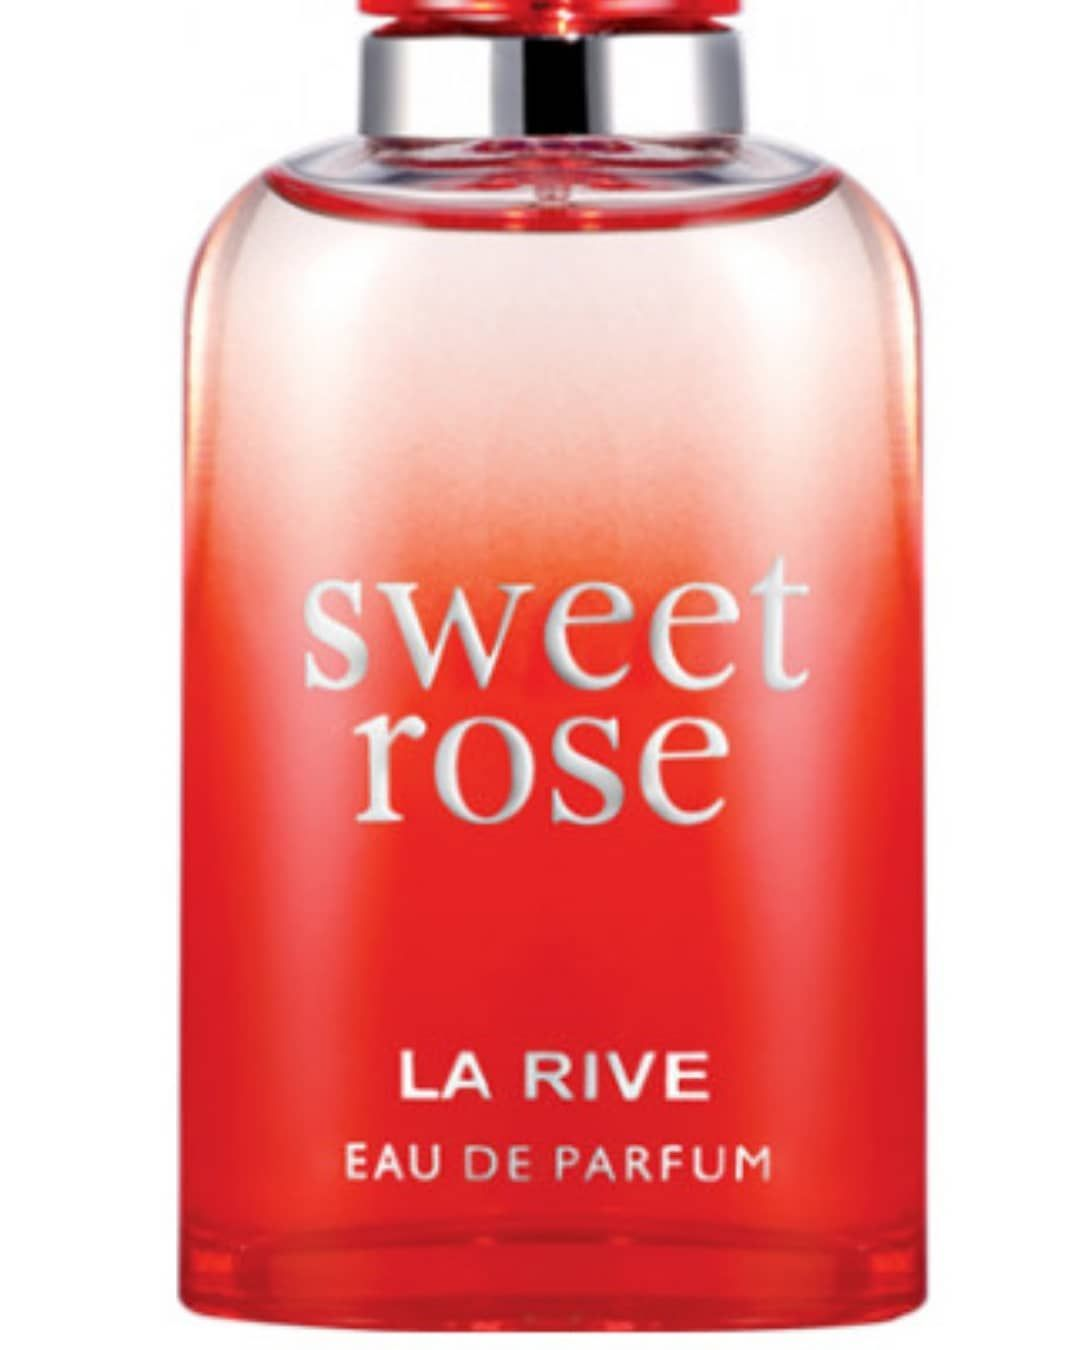 Sweet rose by LA Rive is a floral fragrance for women  Top